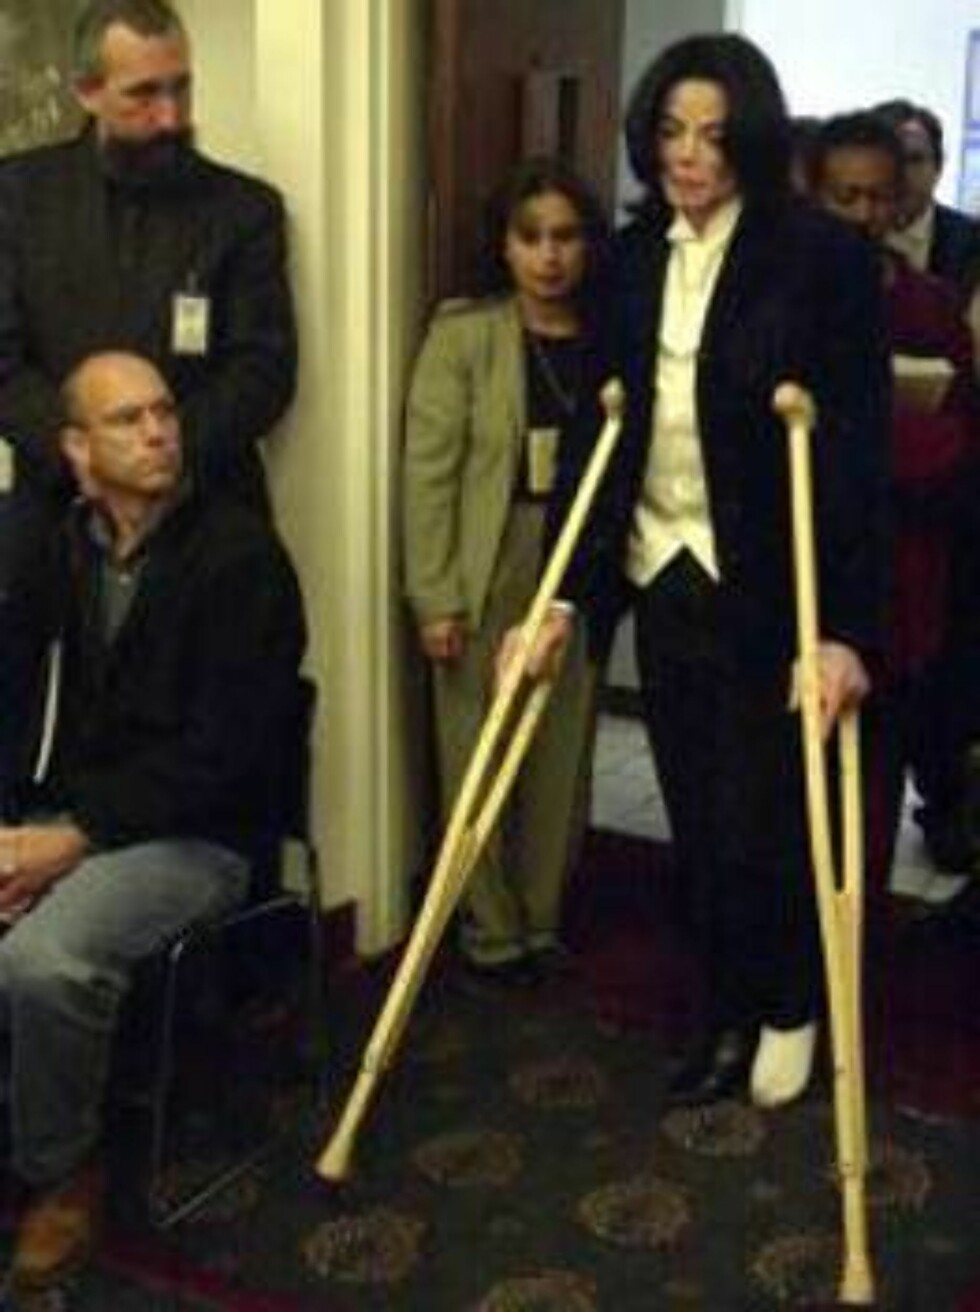 SANTA MARIA, CA - DECEMBER 3:  Singer Michael Jackson arrives in crutches at the Santa Maria Superior Court during his civil trial on December 3, 2002 in Santa Maria, California.  The artist is being sued for $21 million by his longtime promoter for backi Foto: All Over Press